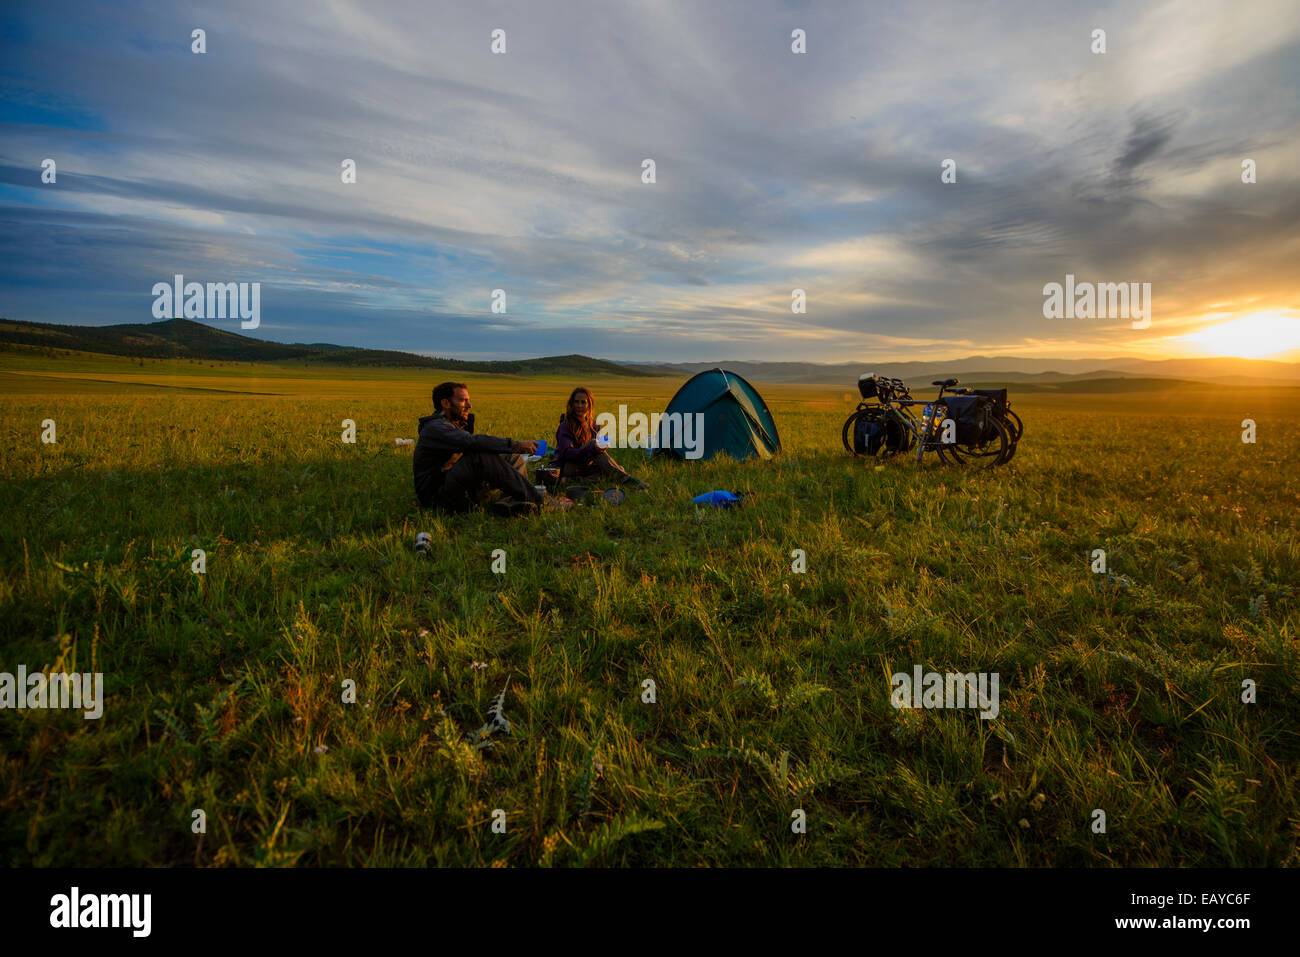 Camping in the Mongolian steppe, Mongolia - Stock Image